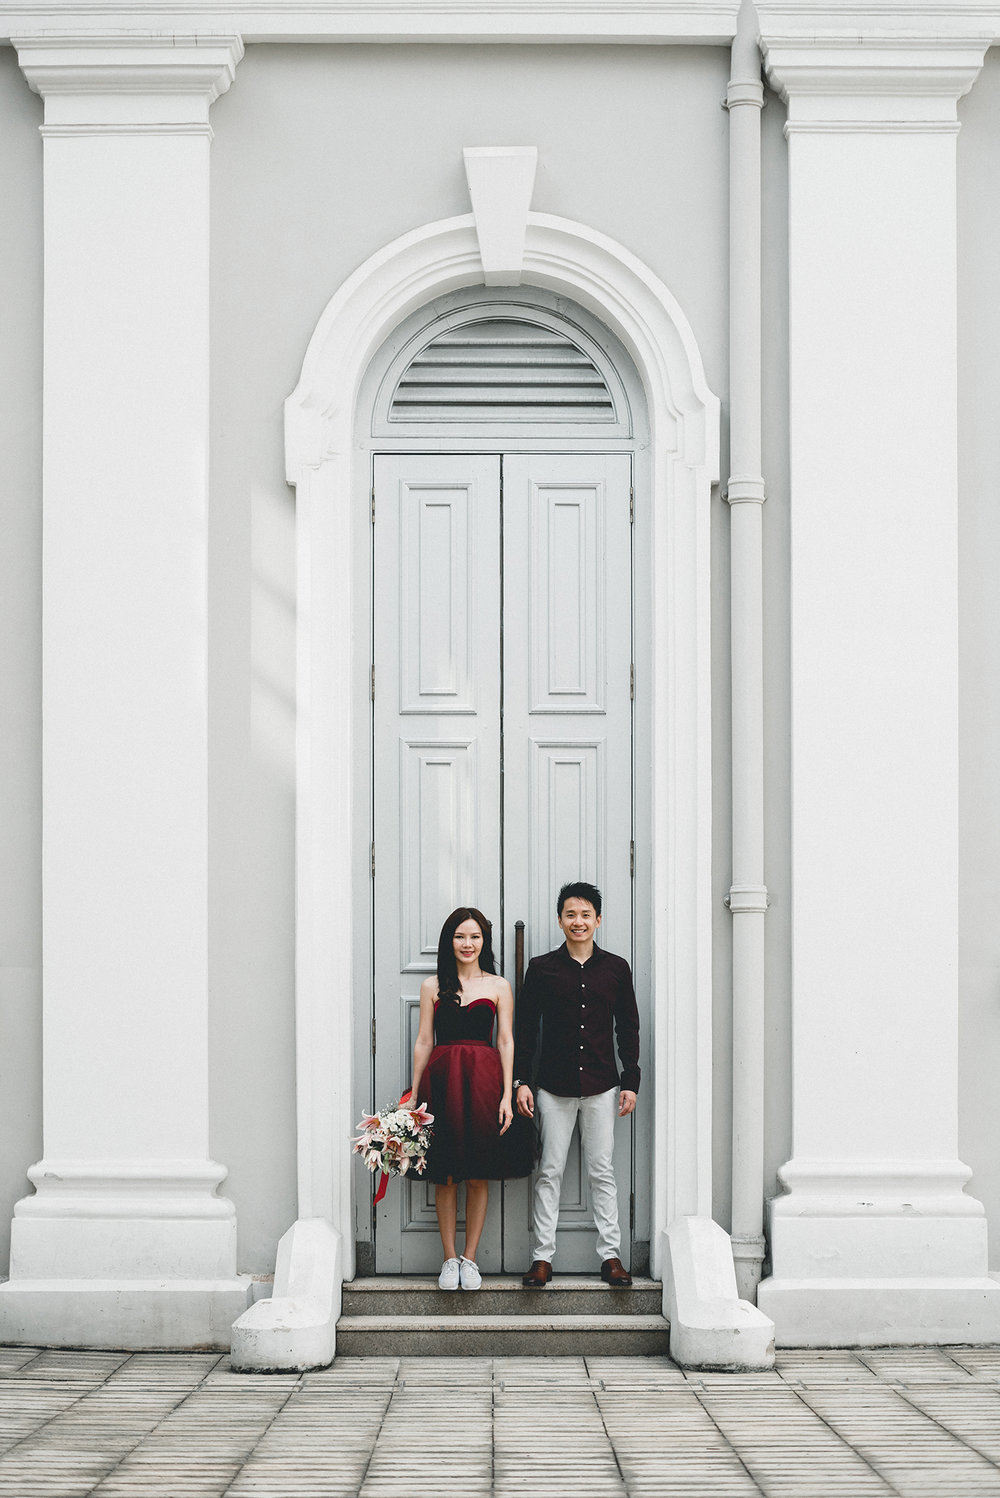 Prewedding Nationa Gallery 00003.JPG